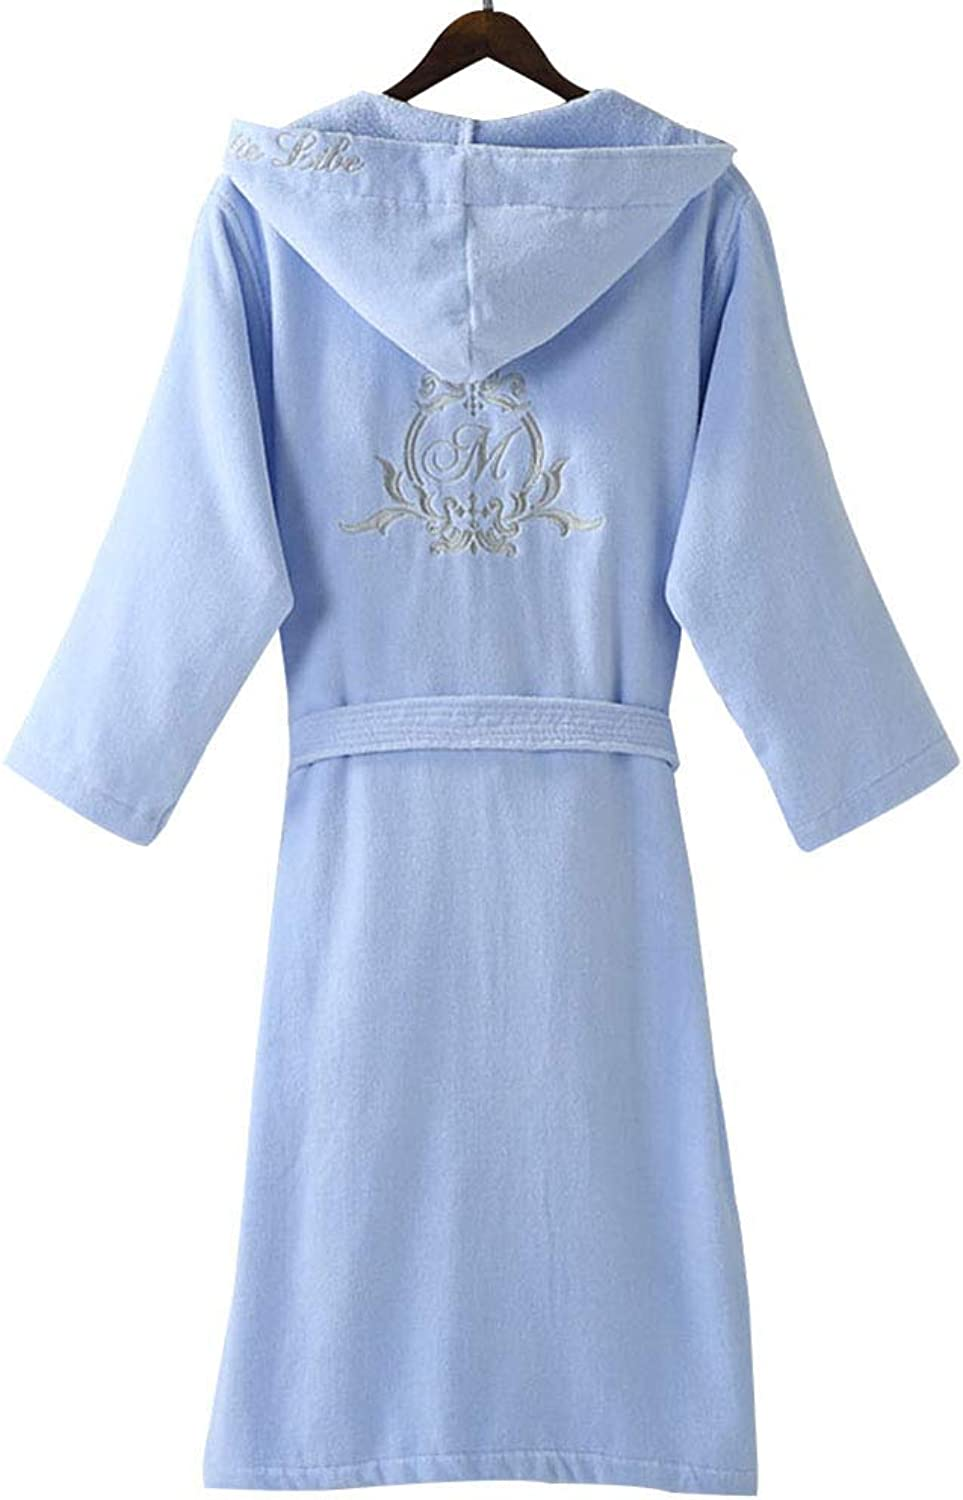 Hotel Bathrobes, Men Women Cotton Toweling Robe, Adult Hooded Thickened Long Dressing Gown